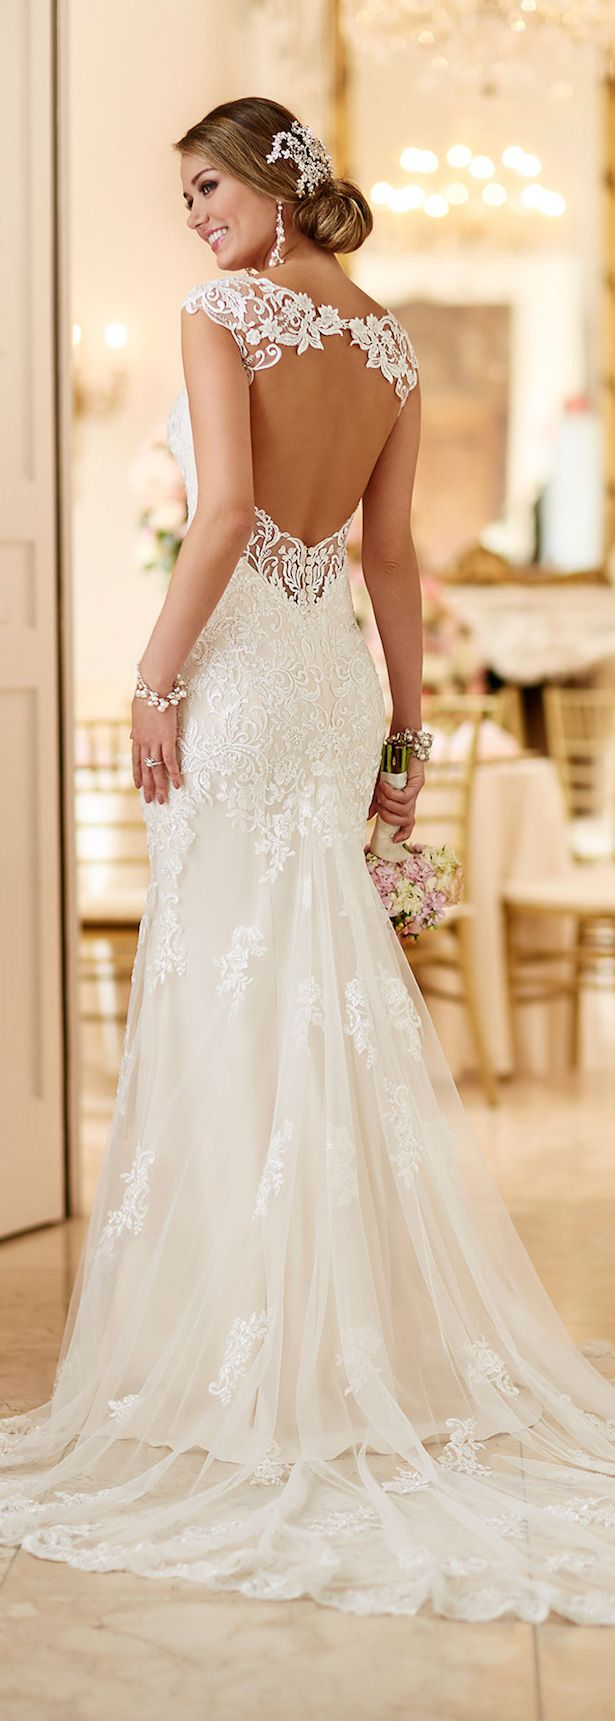 The perfect guide to buying brides dresses careyfashion the perfect guide to buying brides dresses junglespirit Gallery